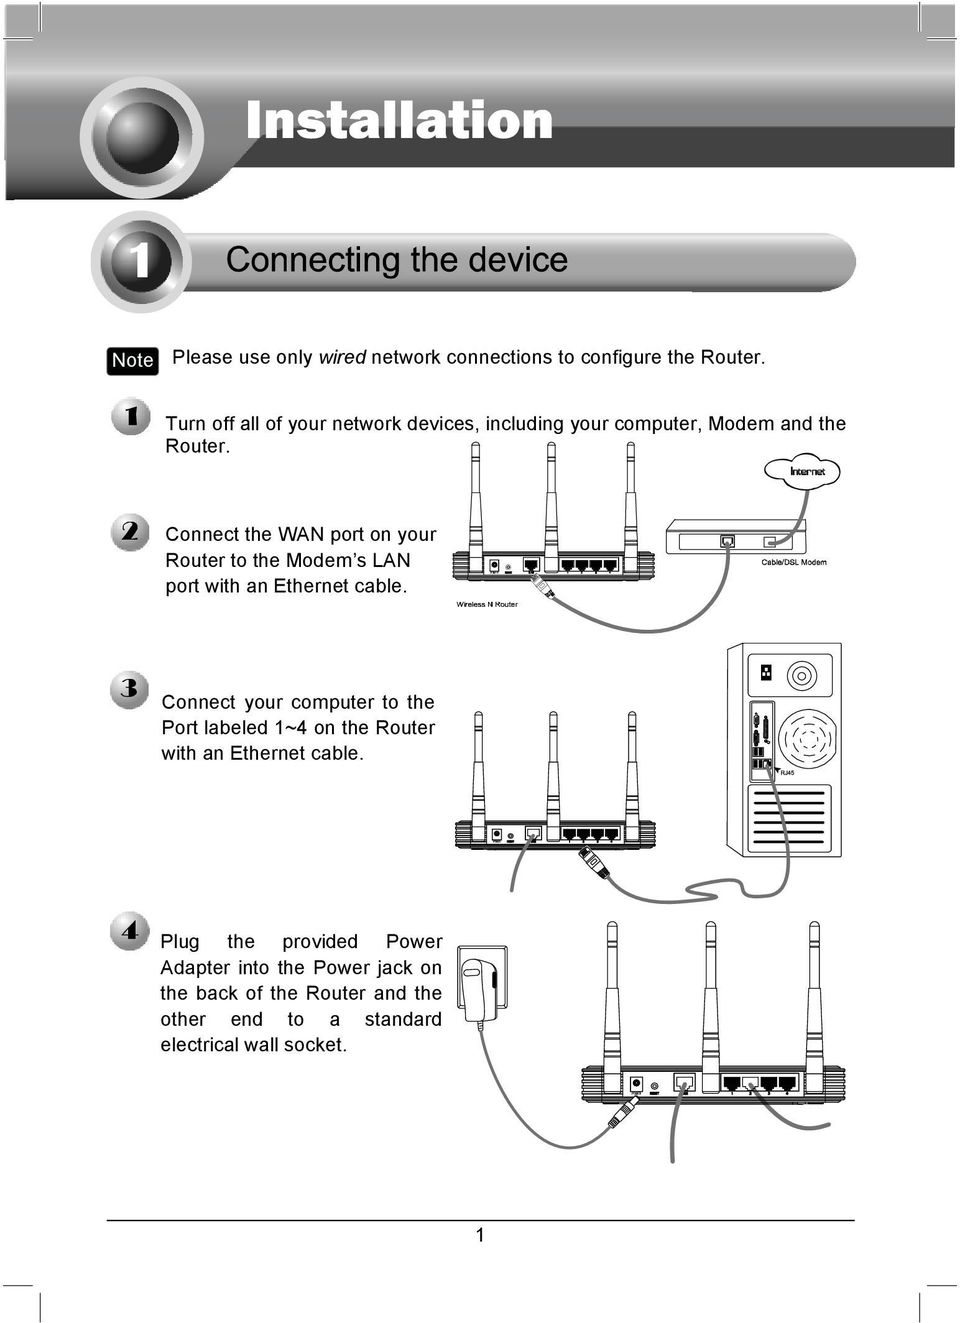 Connect the WAN port on your Router to the Modem s LAN port with an Ethernet cable.